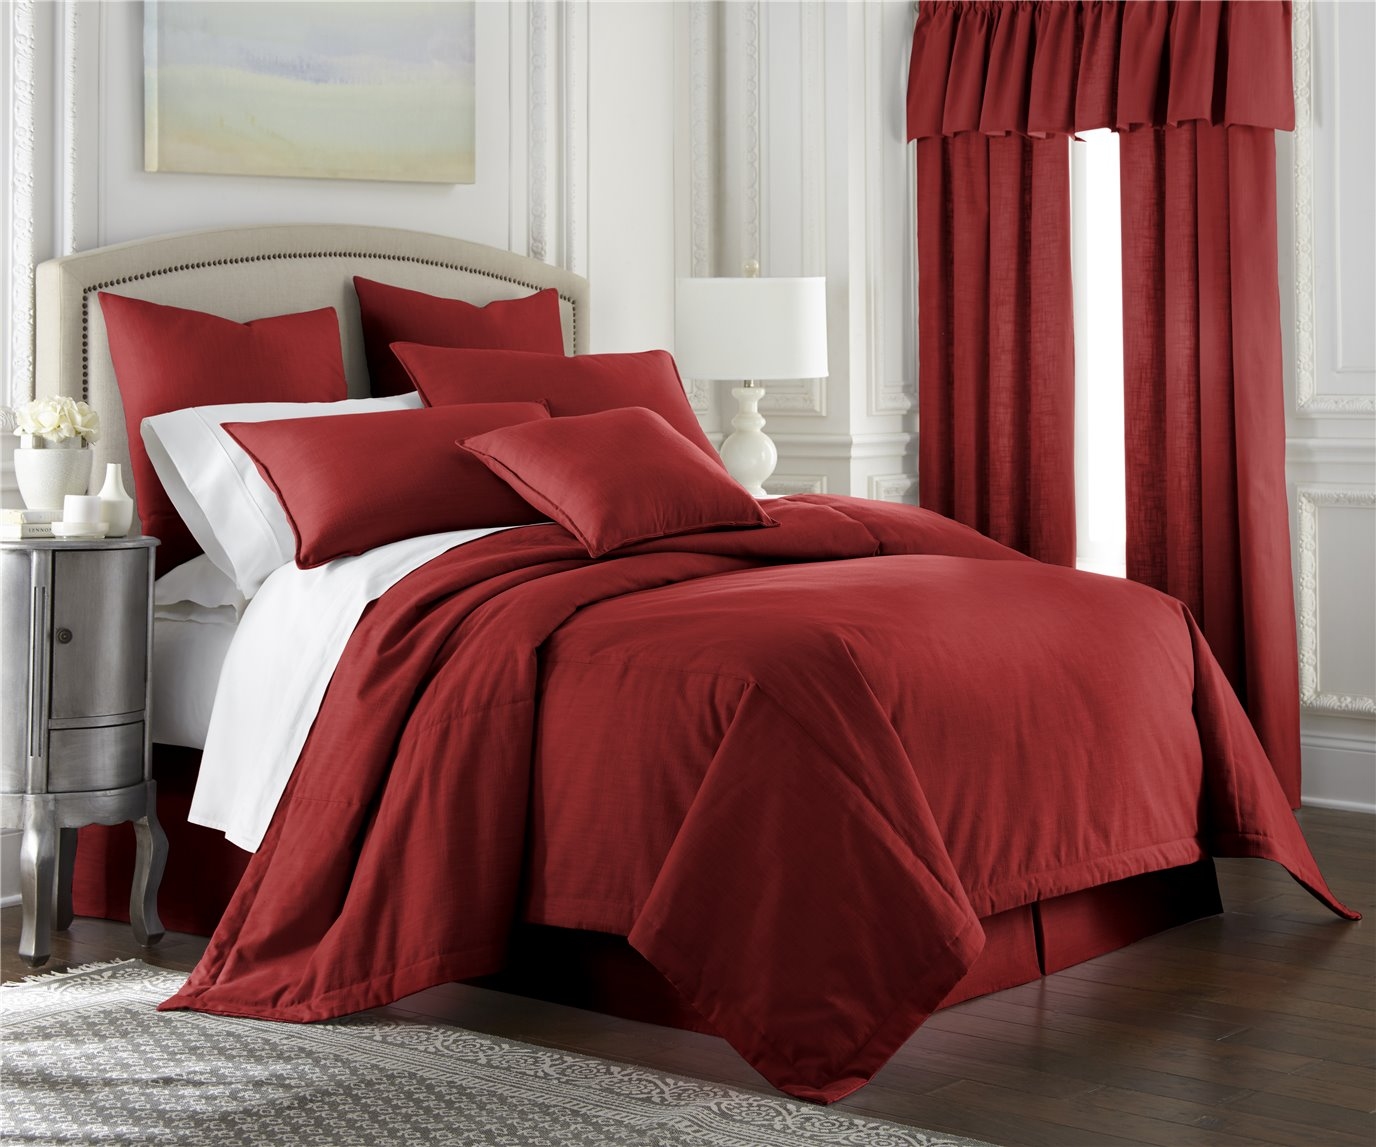 Cambric Red Comforter California King